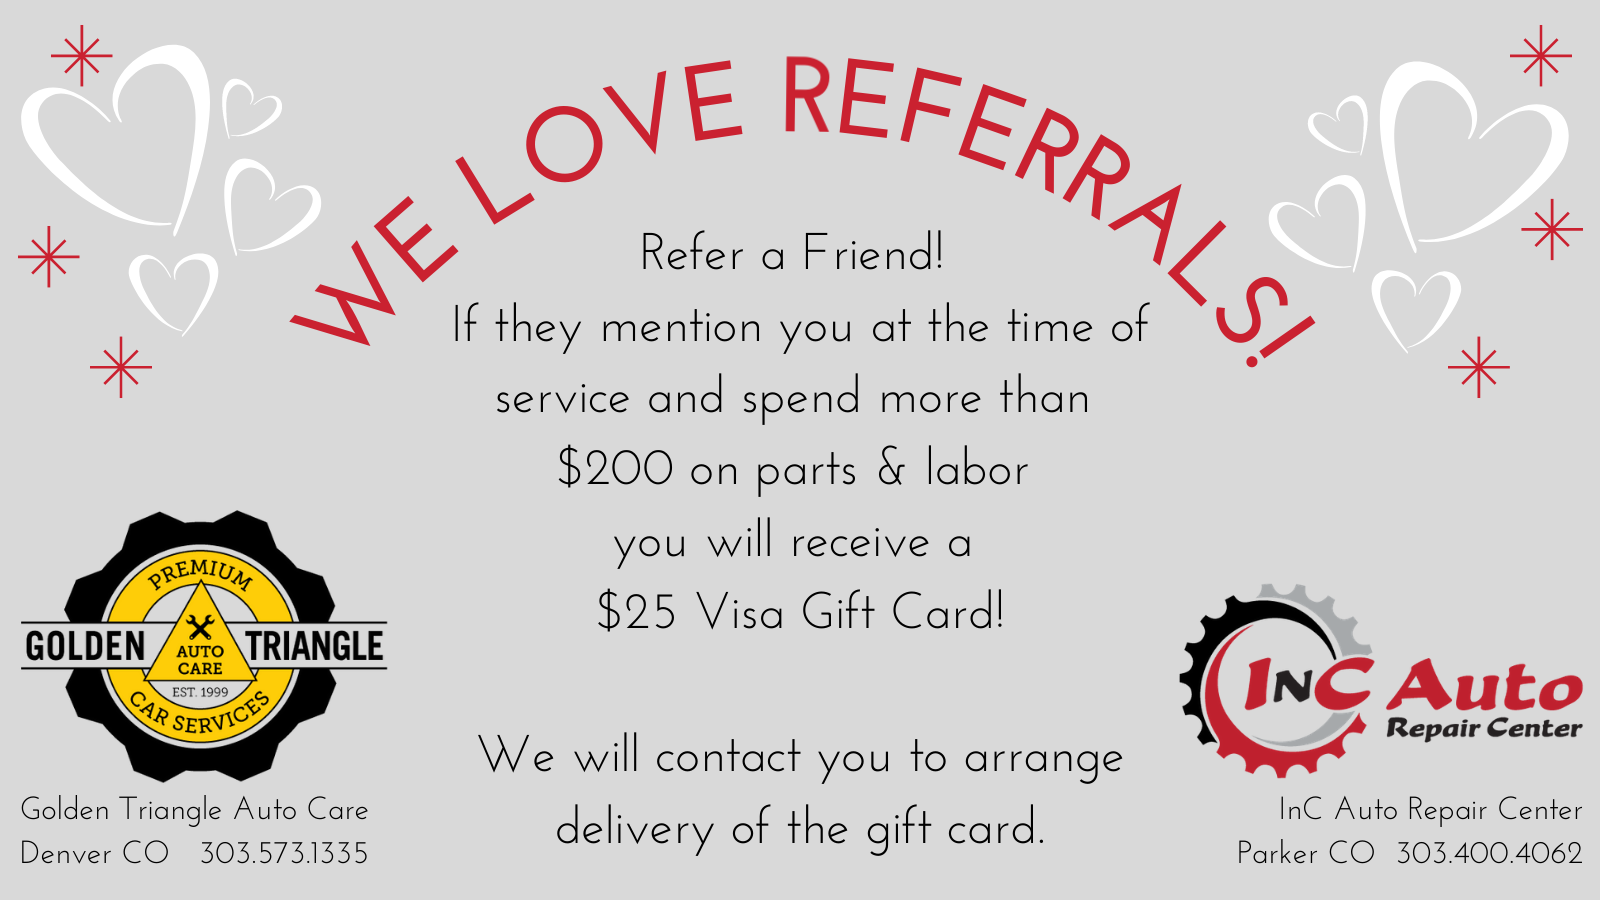 We Love Referrals - Earn a $25 Visa Gift Card